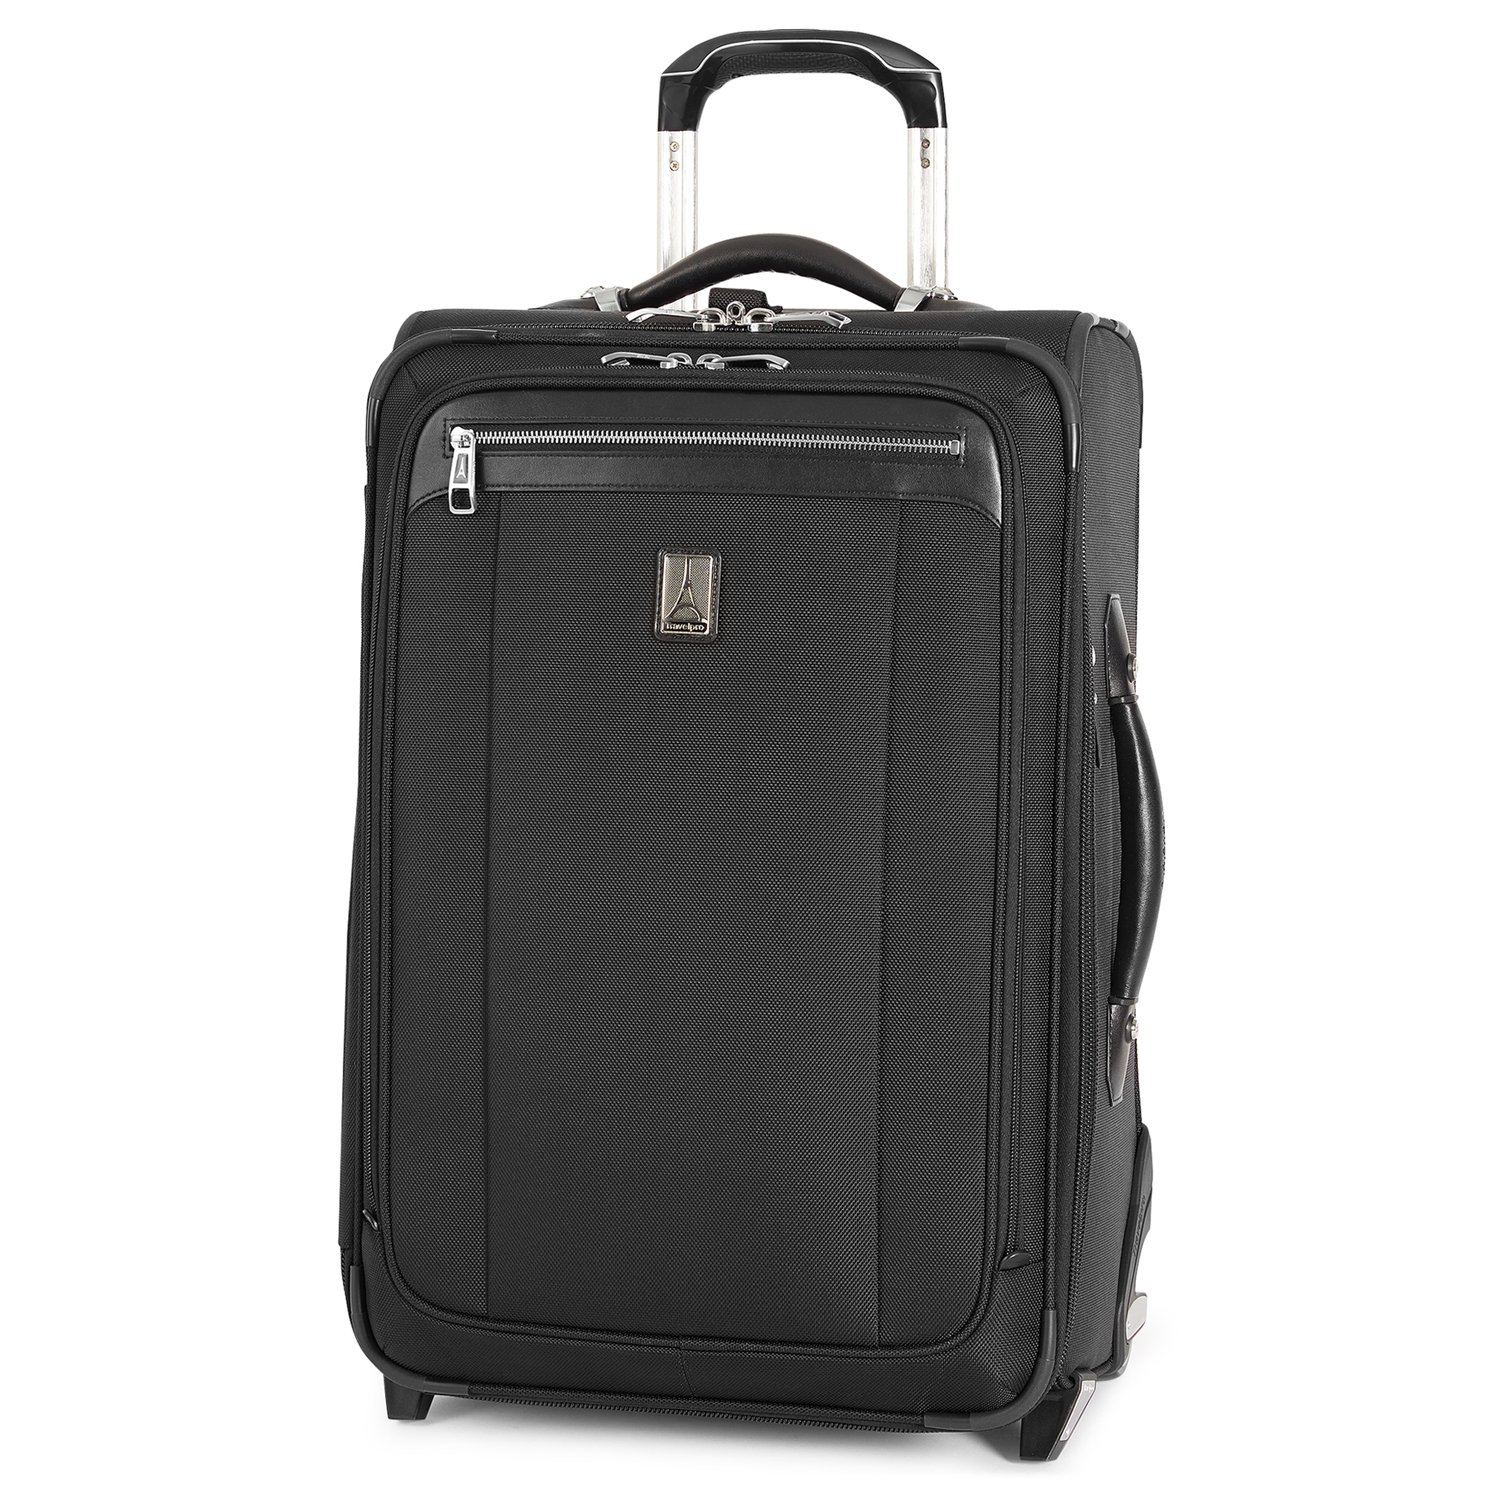 best carry on luggage for domestic flights